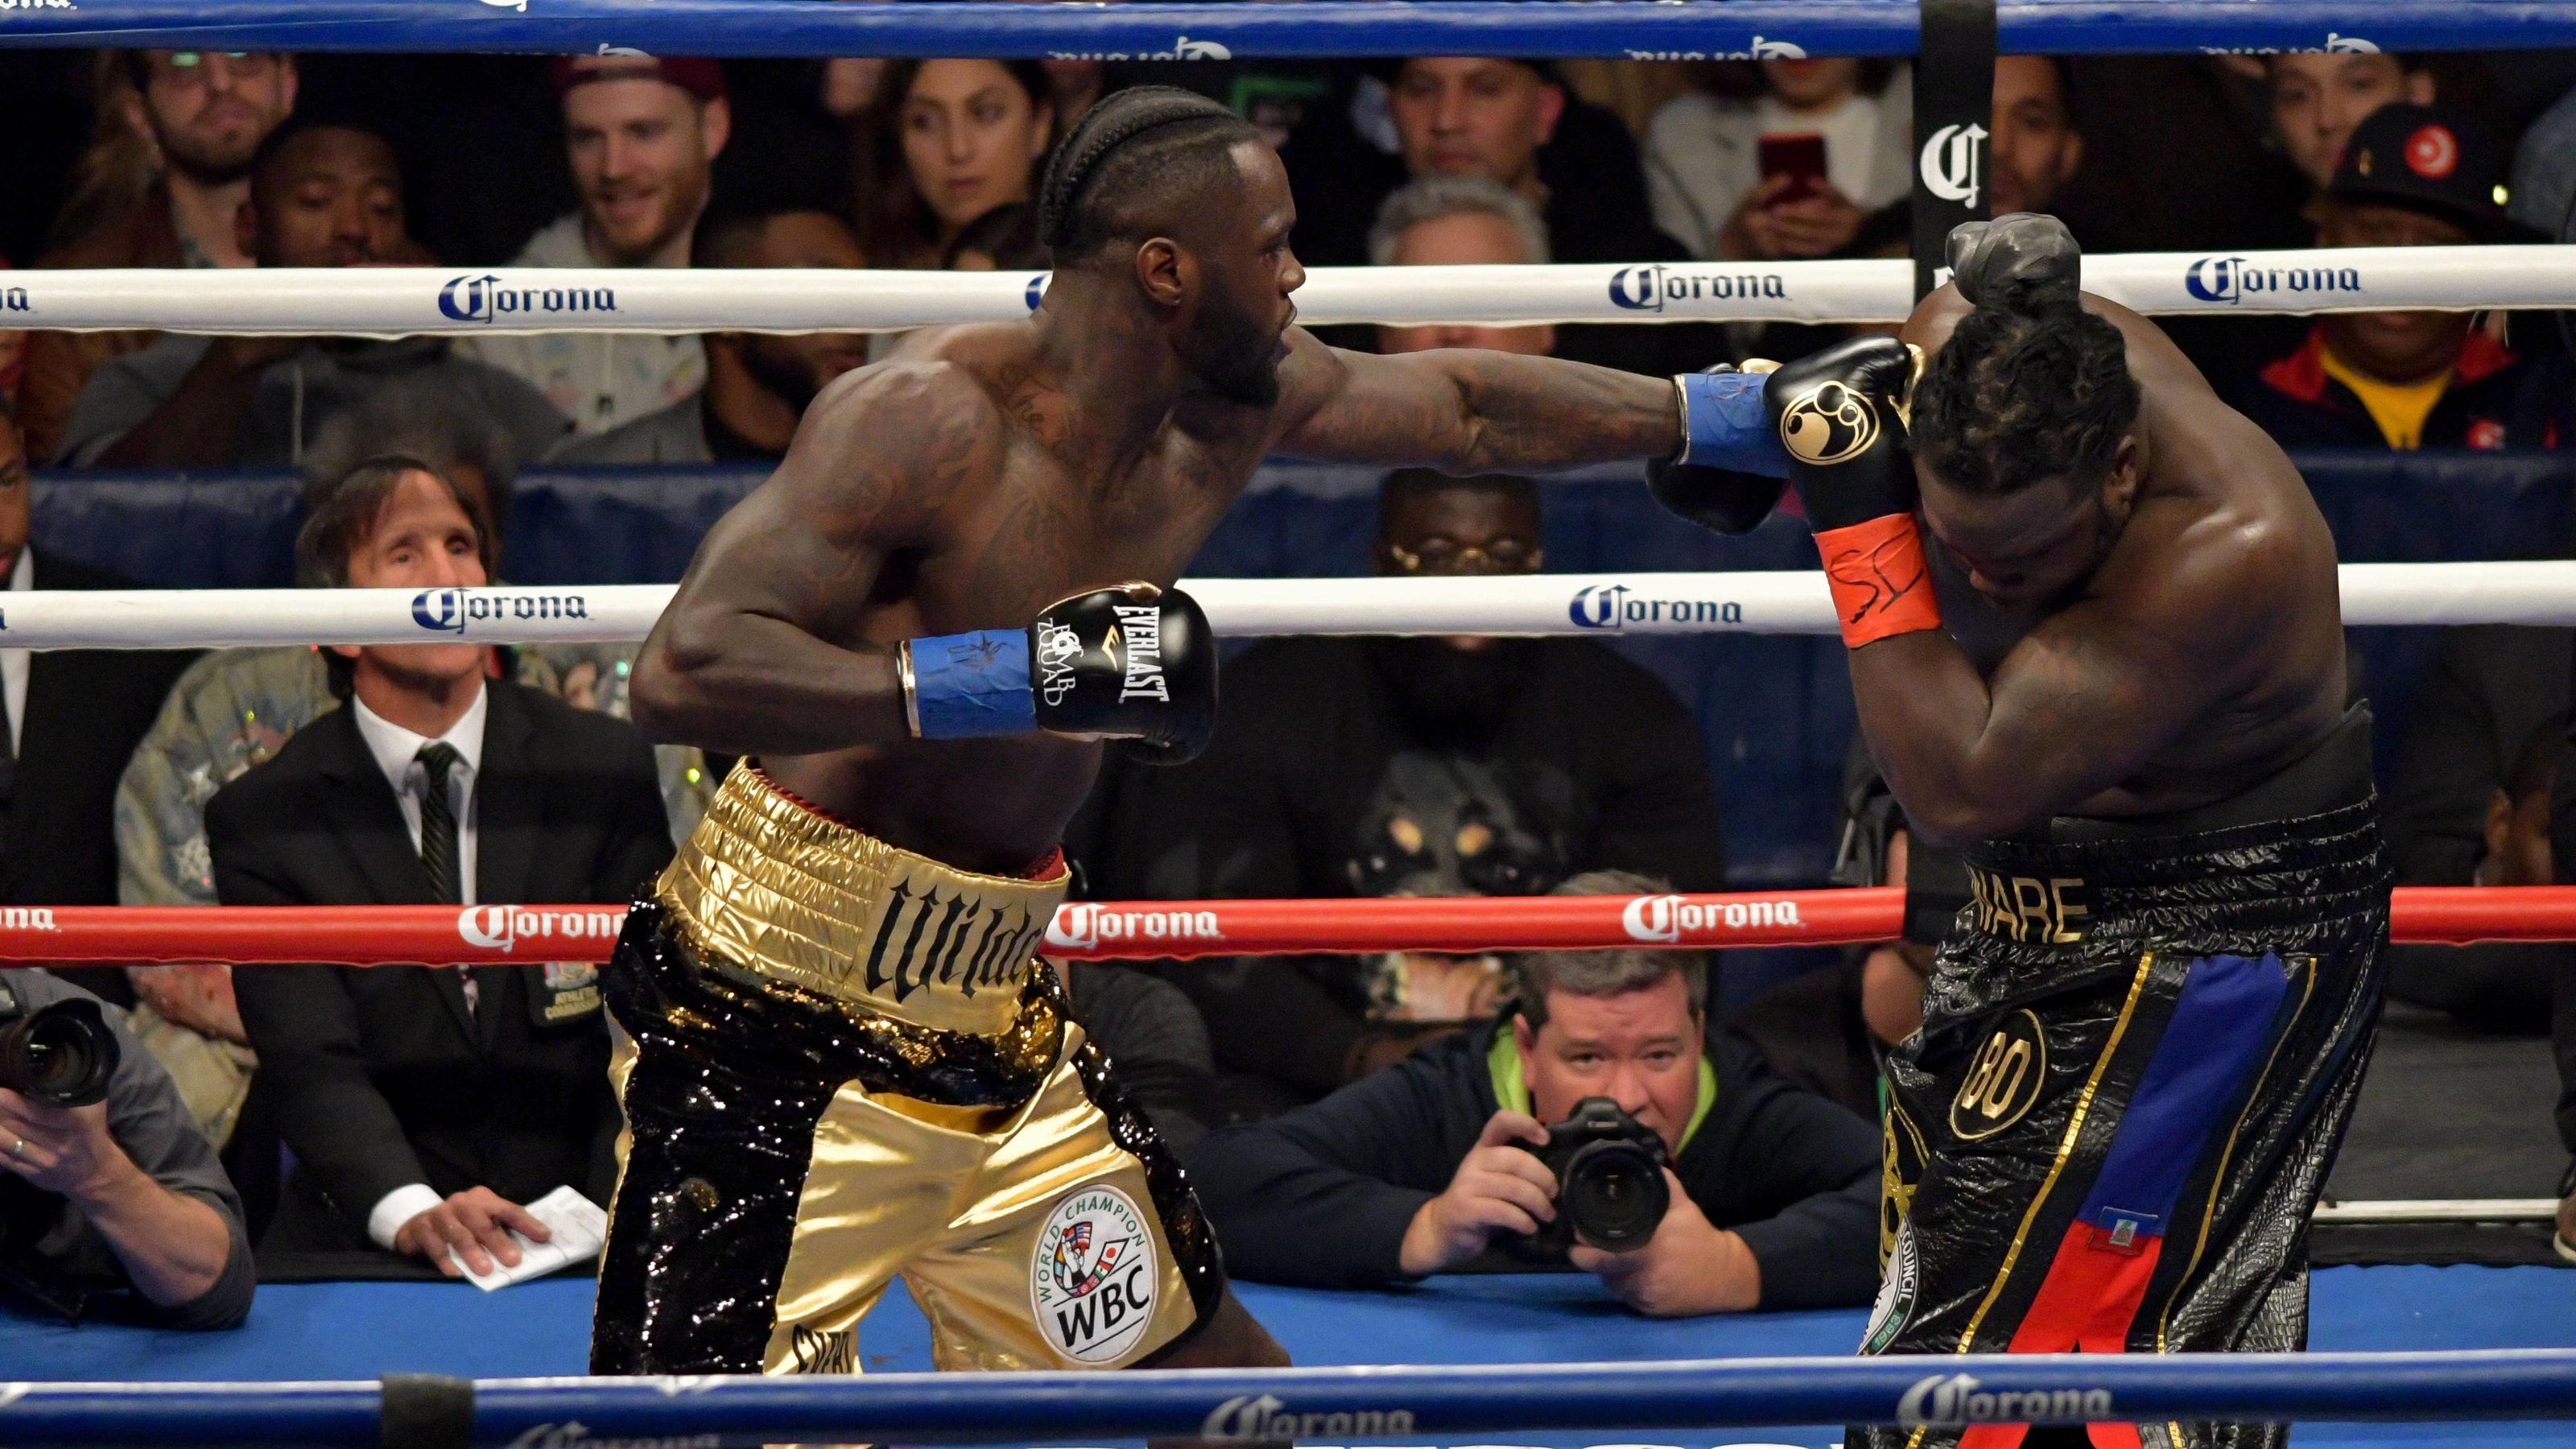 November 4, 2017 - Brooklyn, New York, USA - DEONTAY WILDER (gold trunks) and BERMANE STIVERNE battle in a heavyweight title bout at the Barclays Center in Brooklyn, New York. Boxing 2017 - Deontay Wilder Defeats Bermane Stiverne by 1st Round TKO PUB